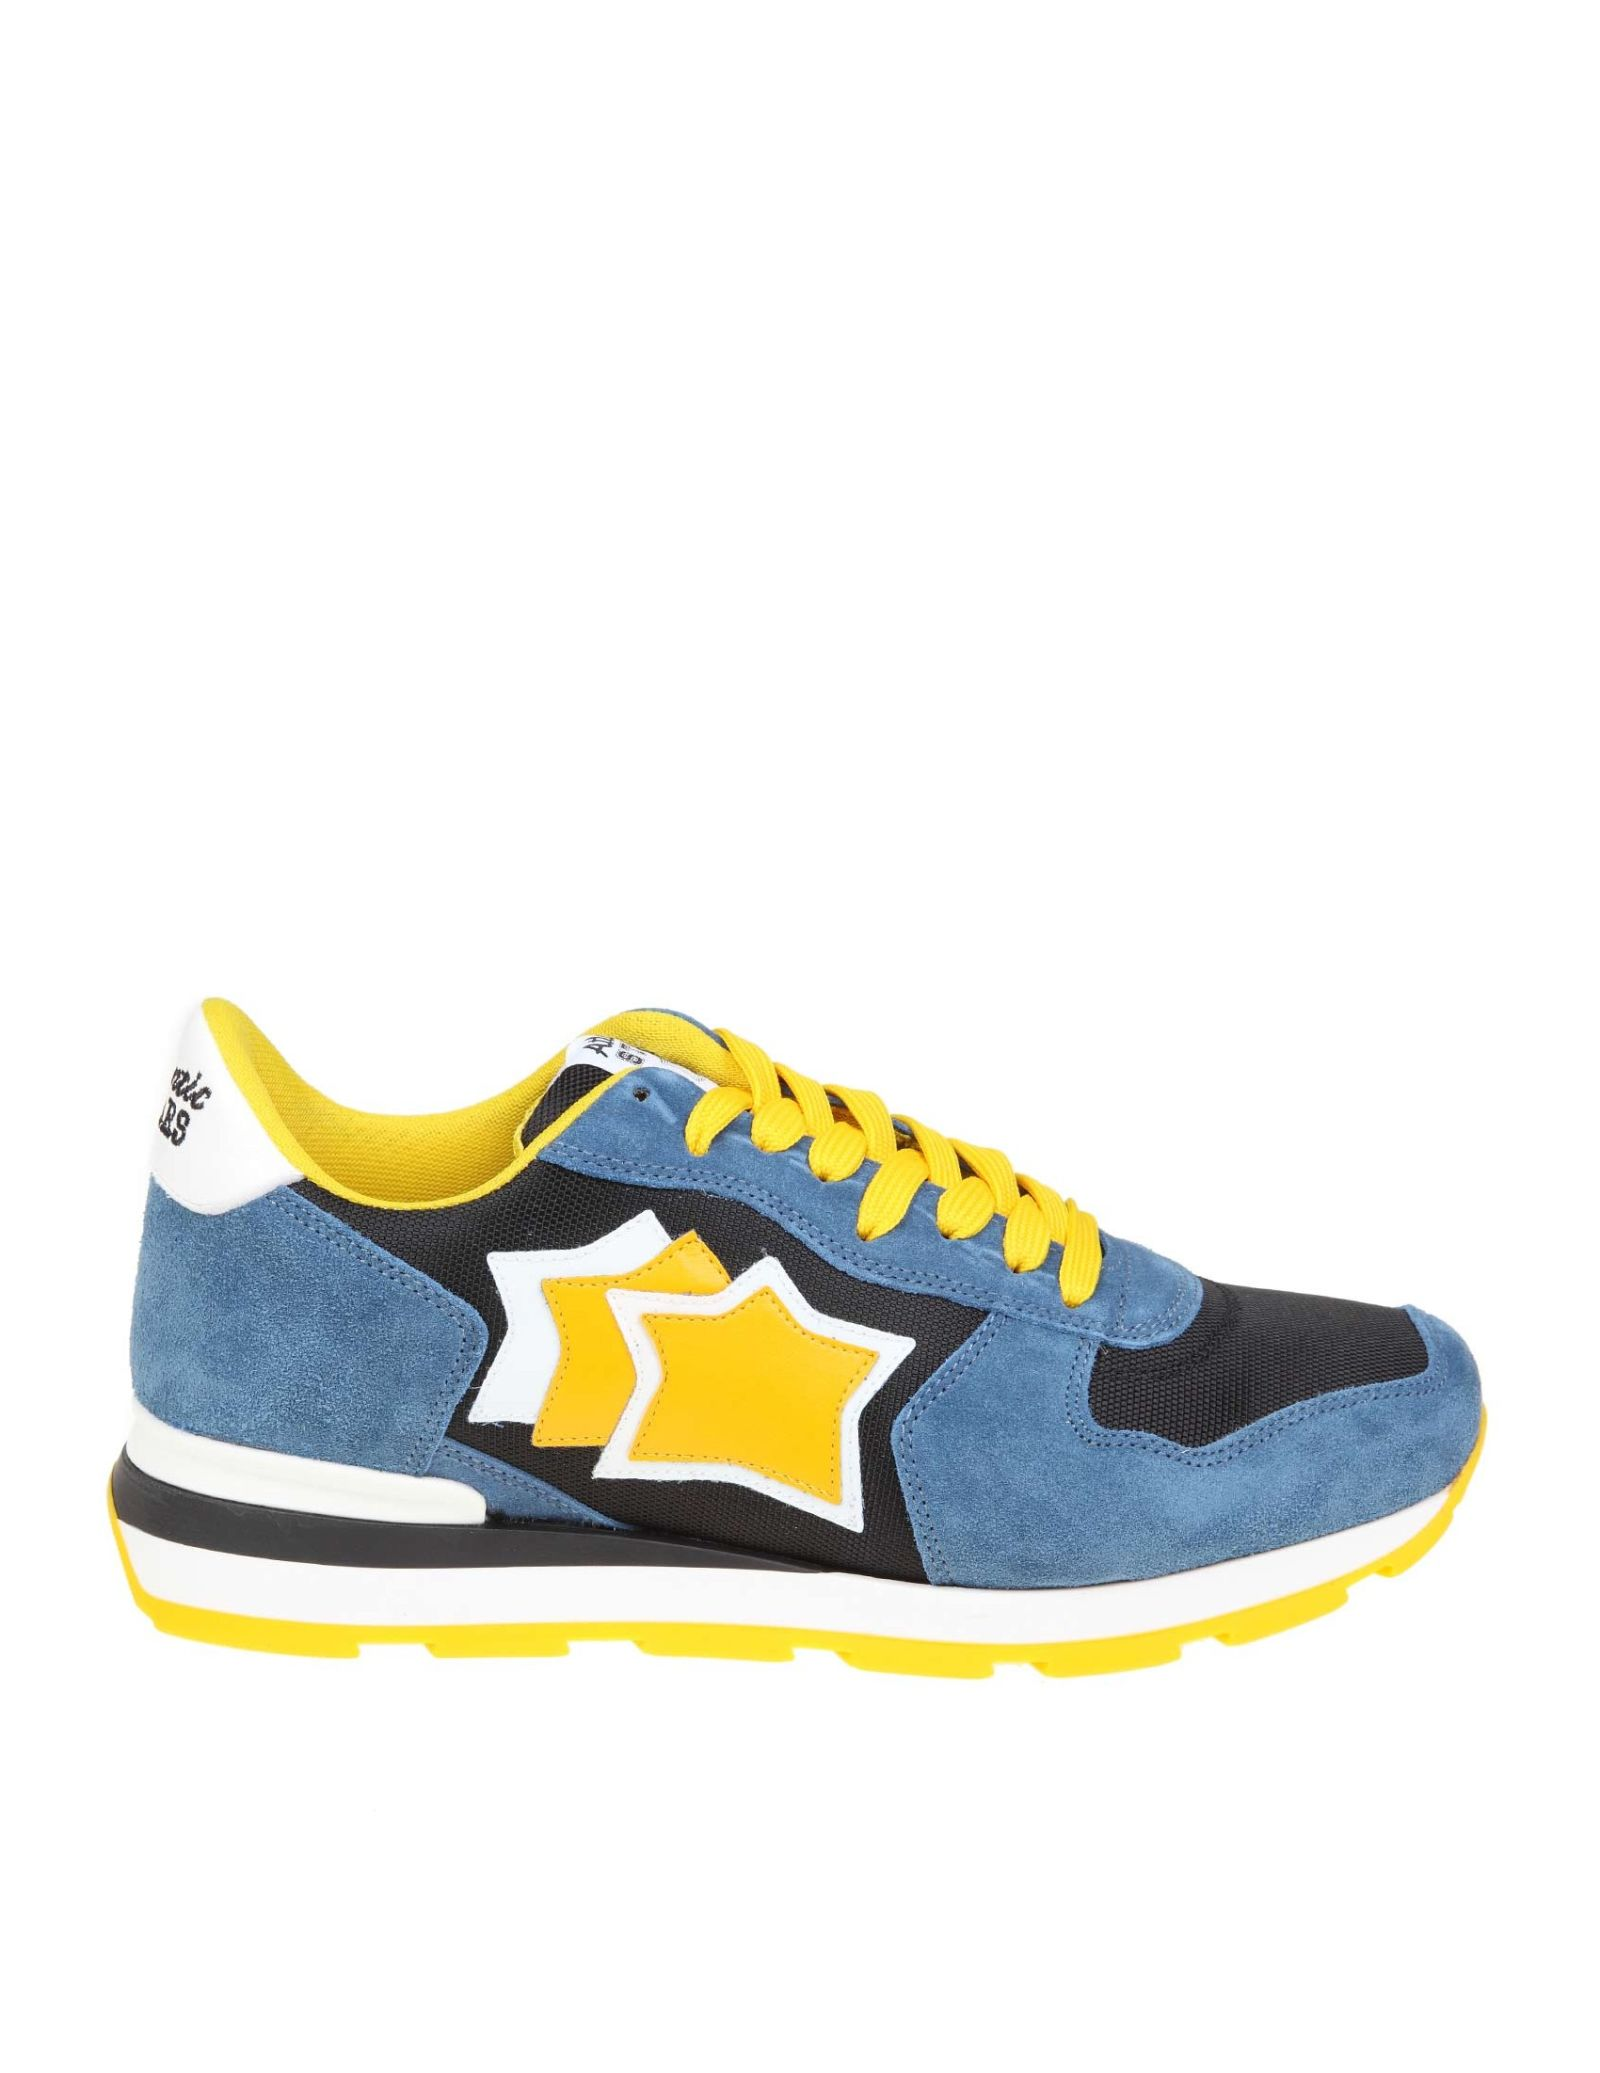 1f8a88c6d6b46 Atlantic Stars Sneakers Antares In Suede And Blue And Yellow Fabric - Basic  ...